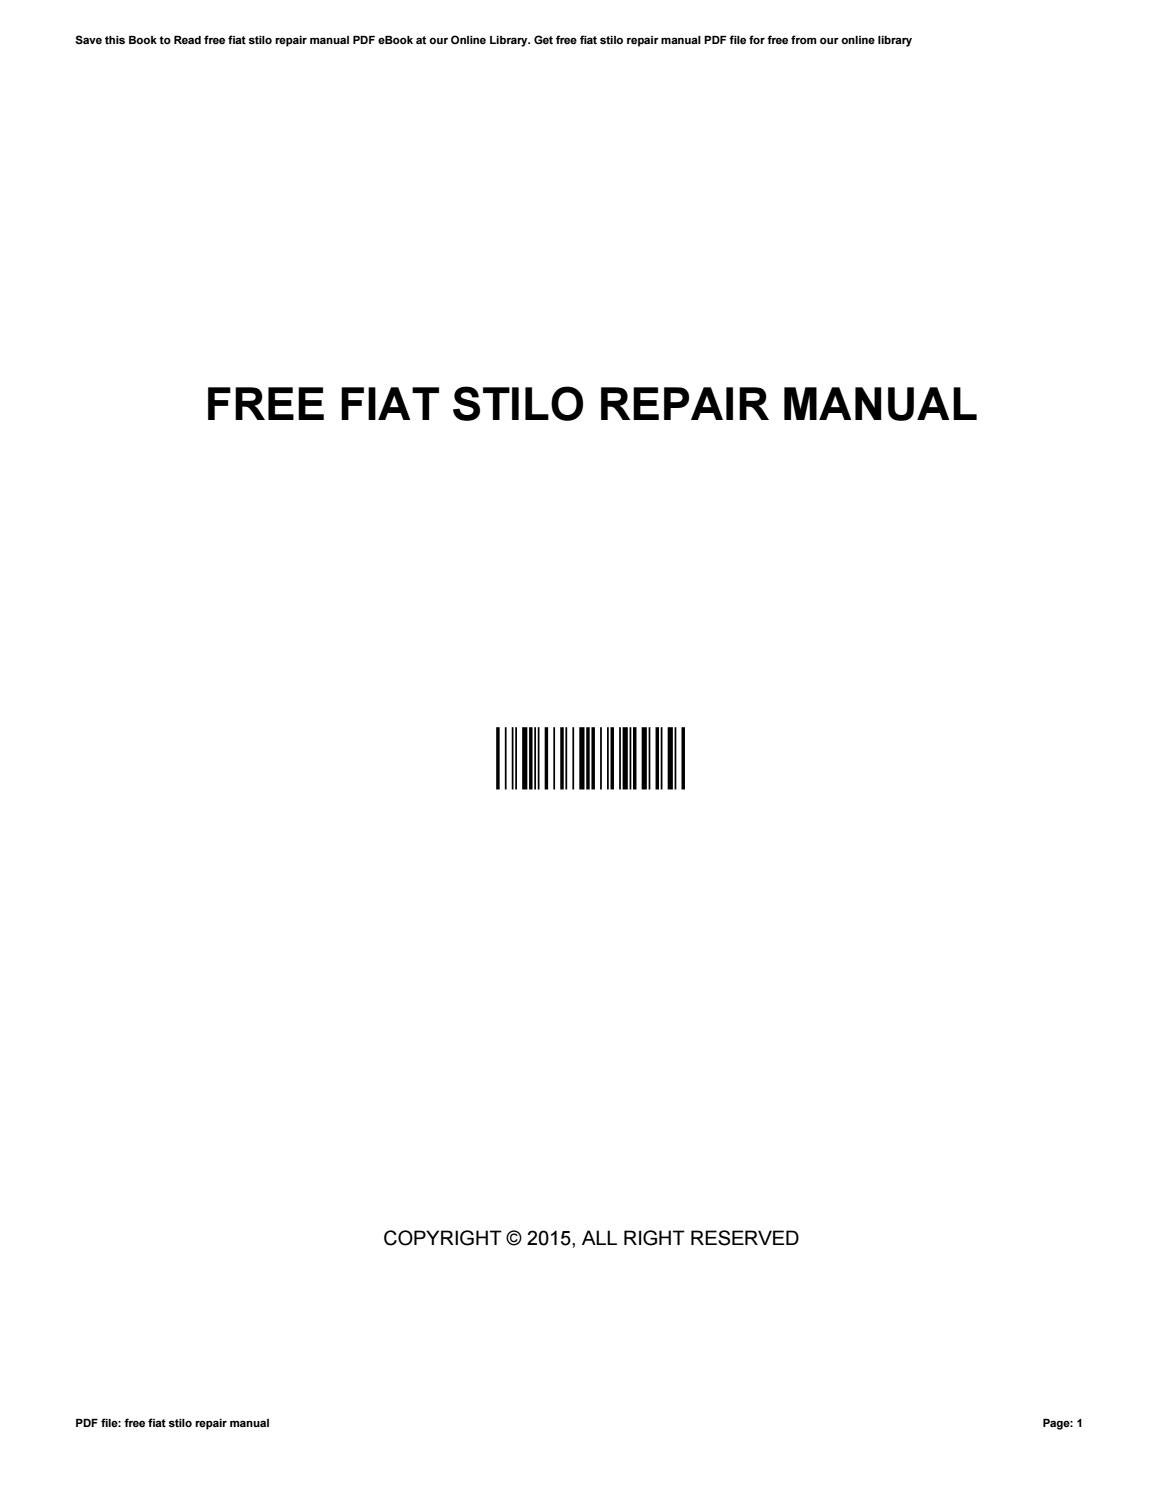 fiat stilo manual pdf free download